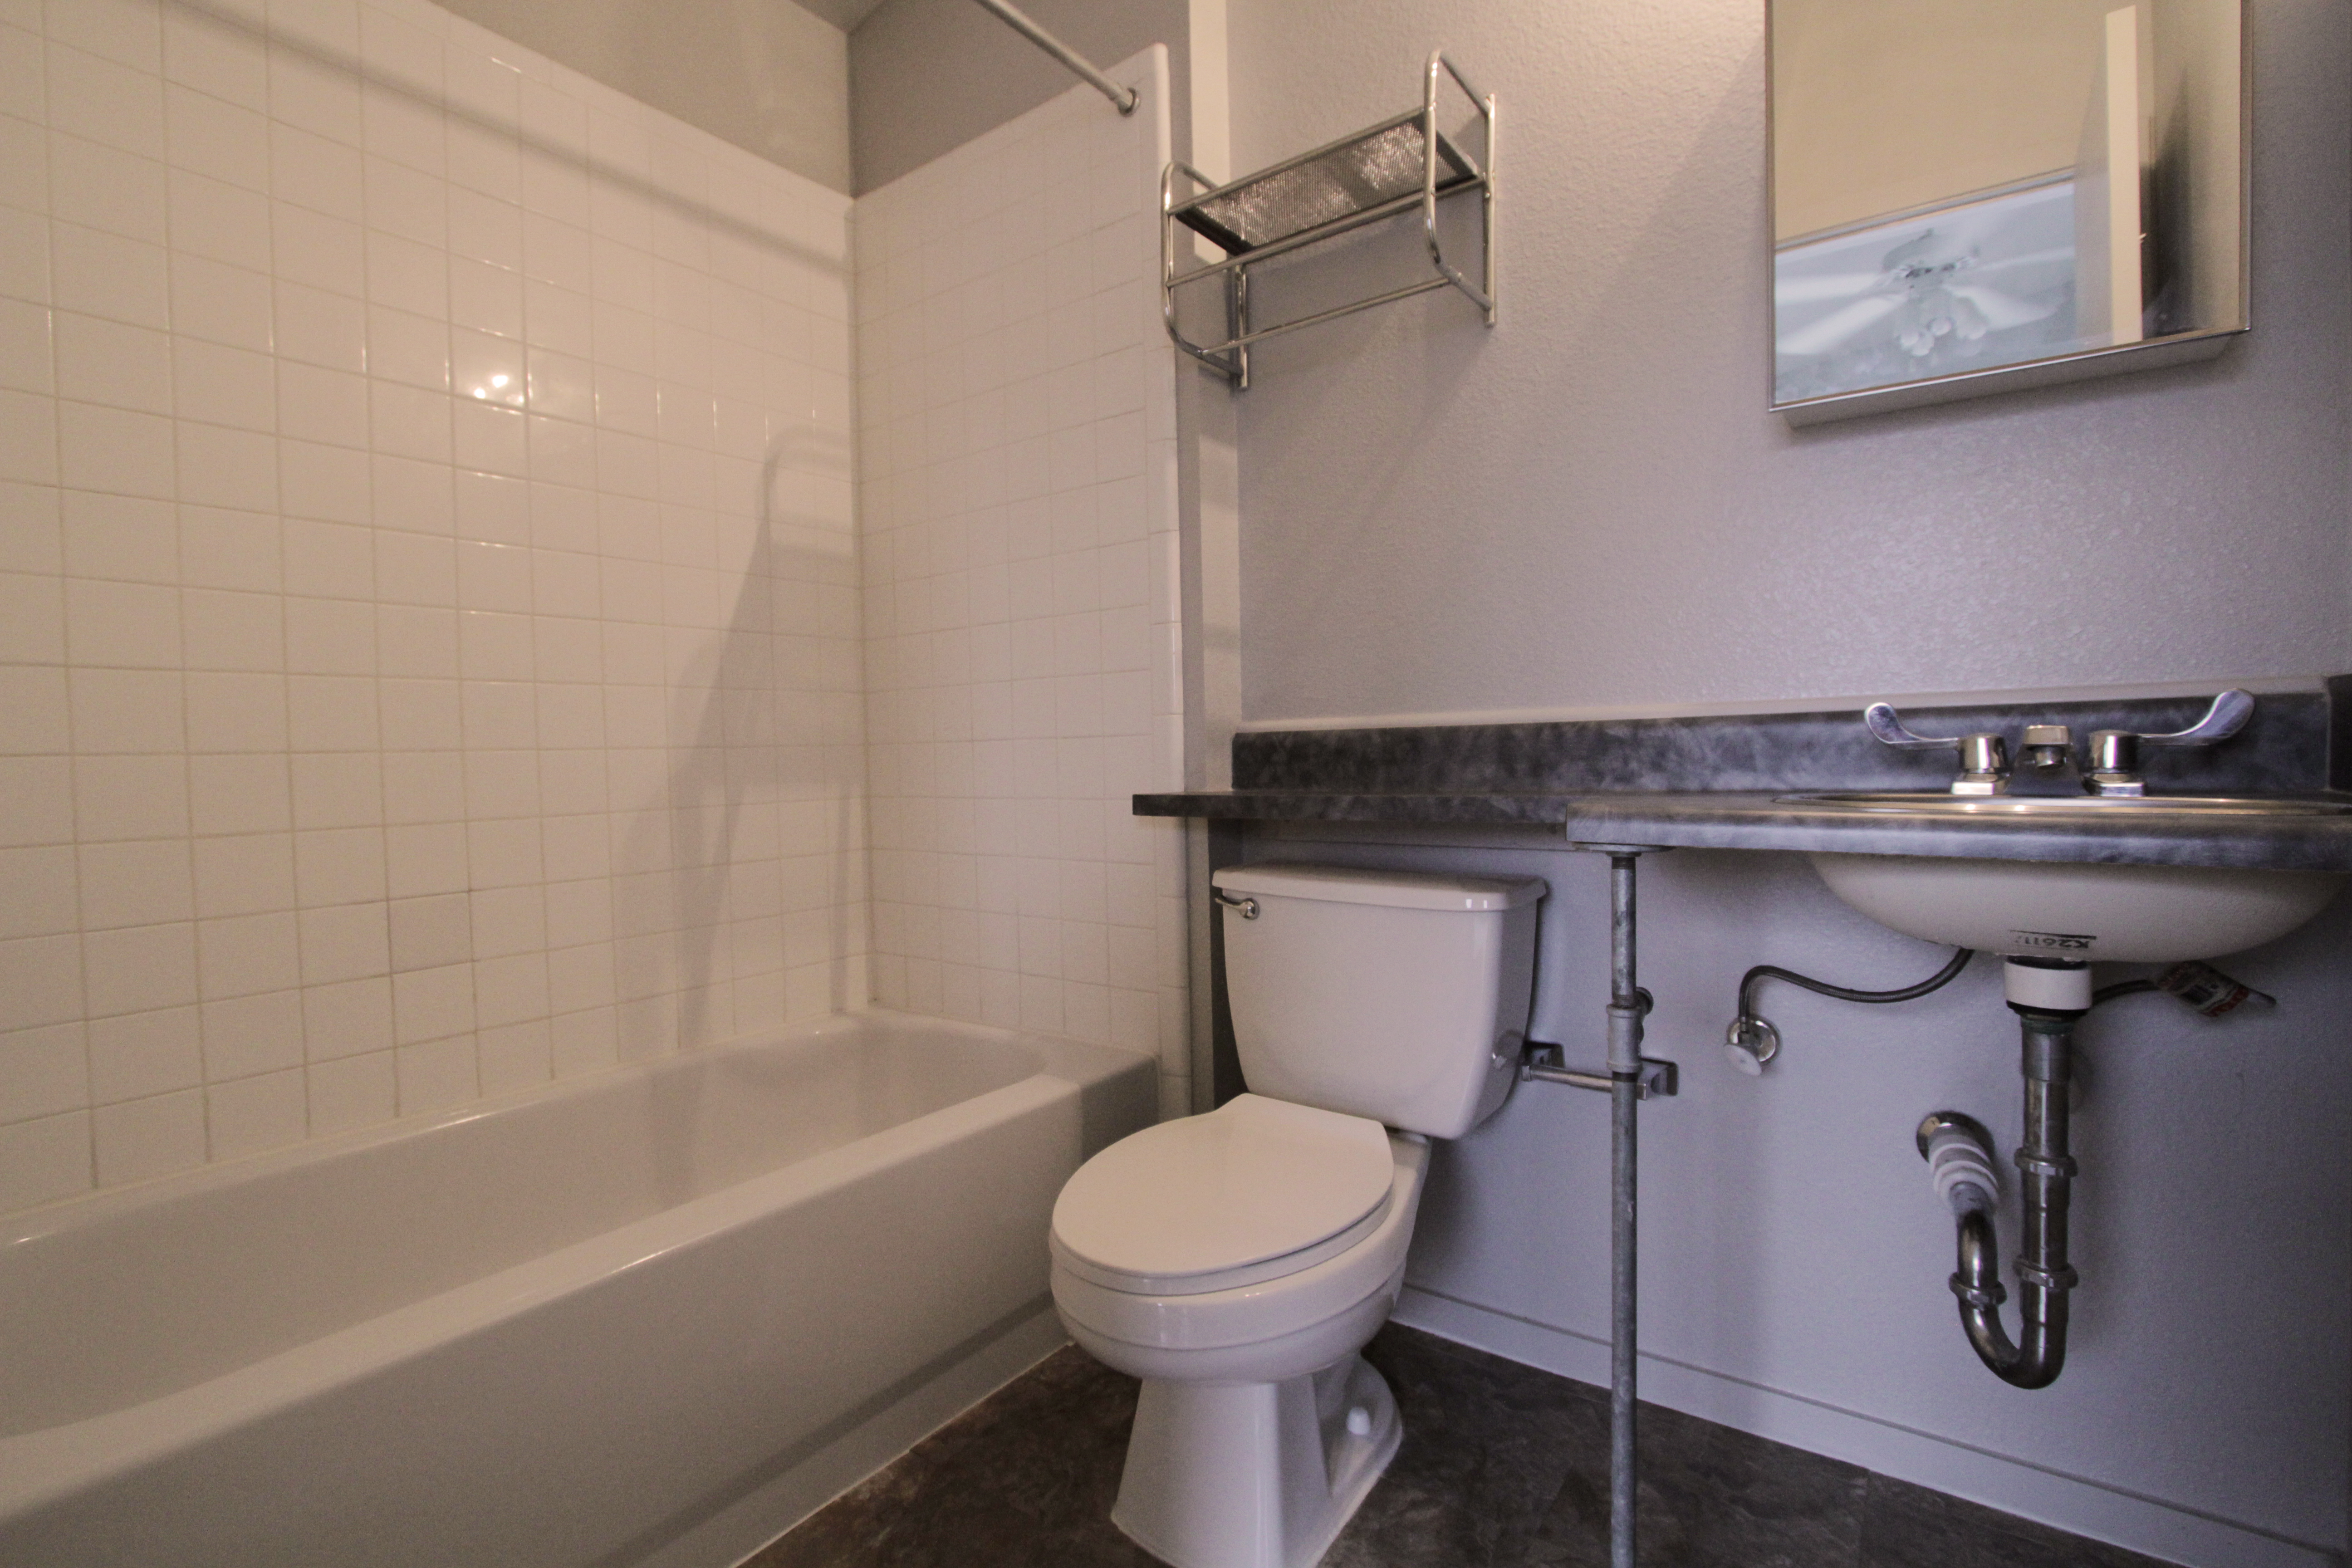 ... As An Additional Bedroom And Bathroom For Extended Common Space, 1200  Square Feet Of Living Space, 2 Private Patios Or Balconies, Galley Style  Kitchen, ...